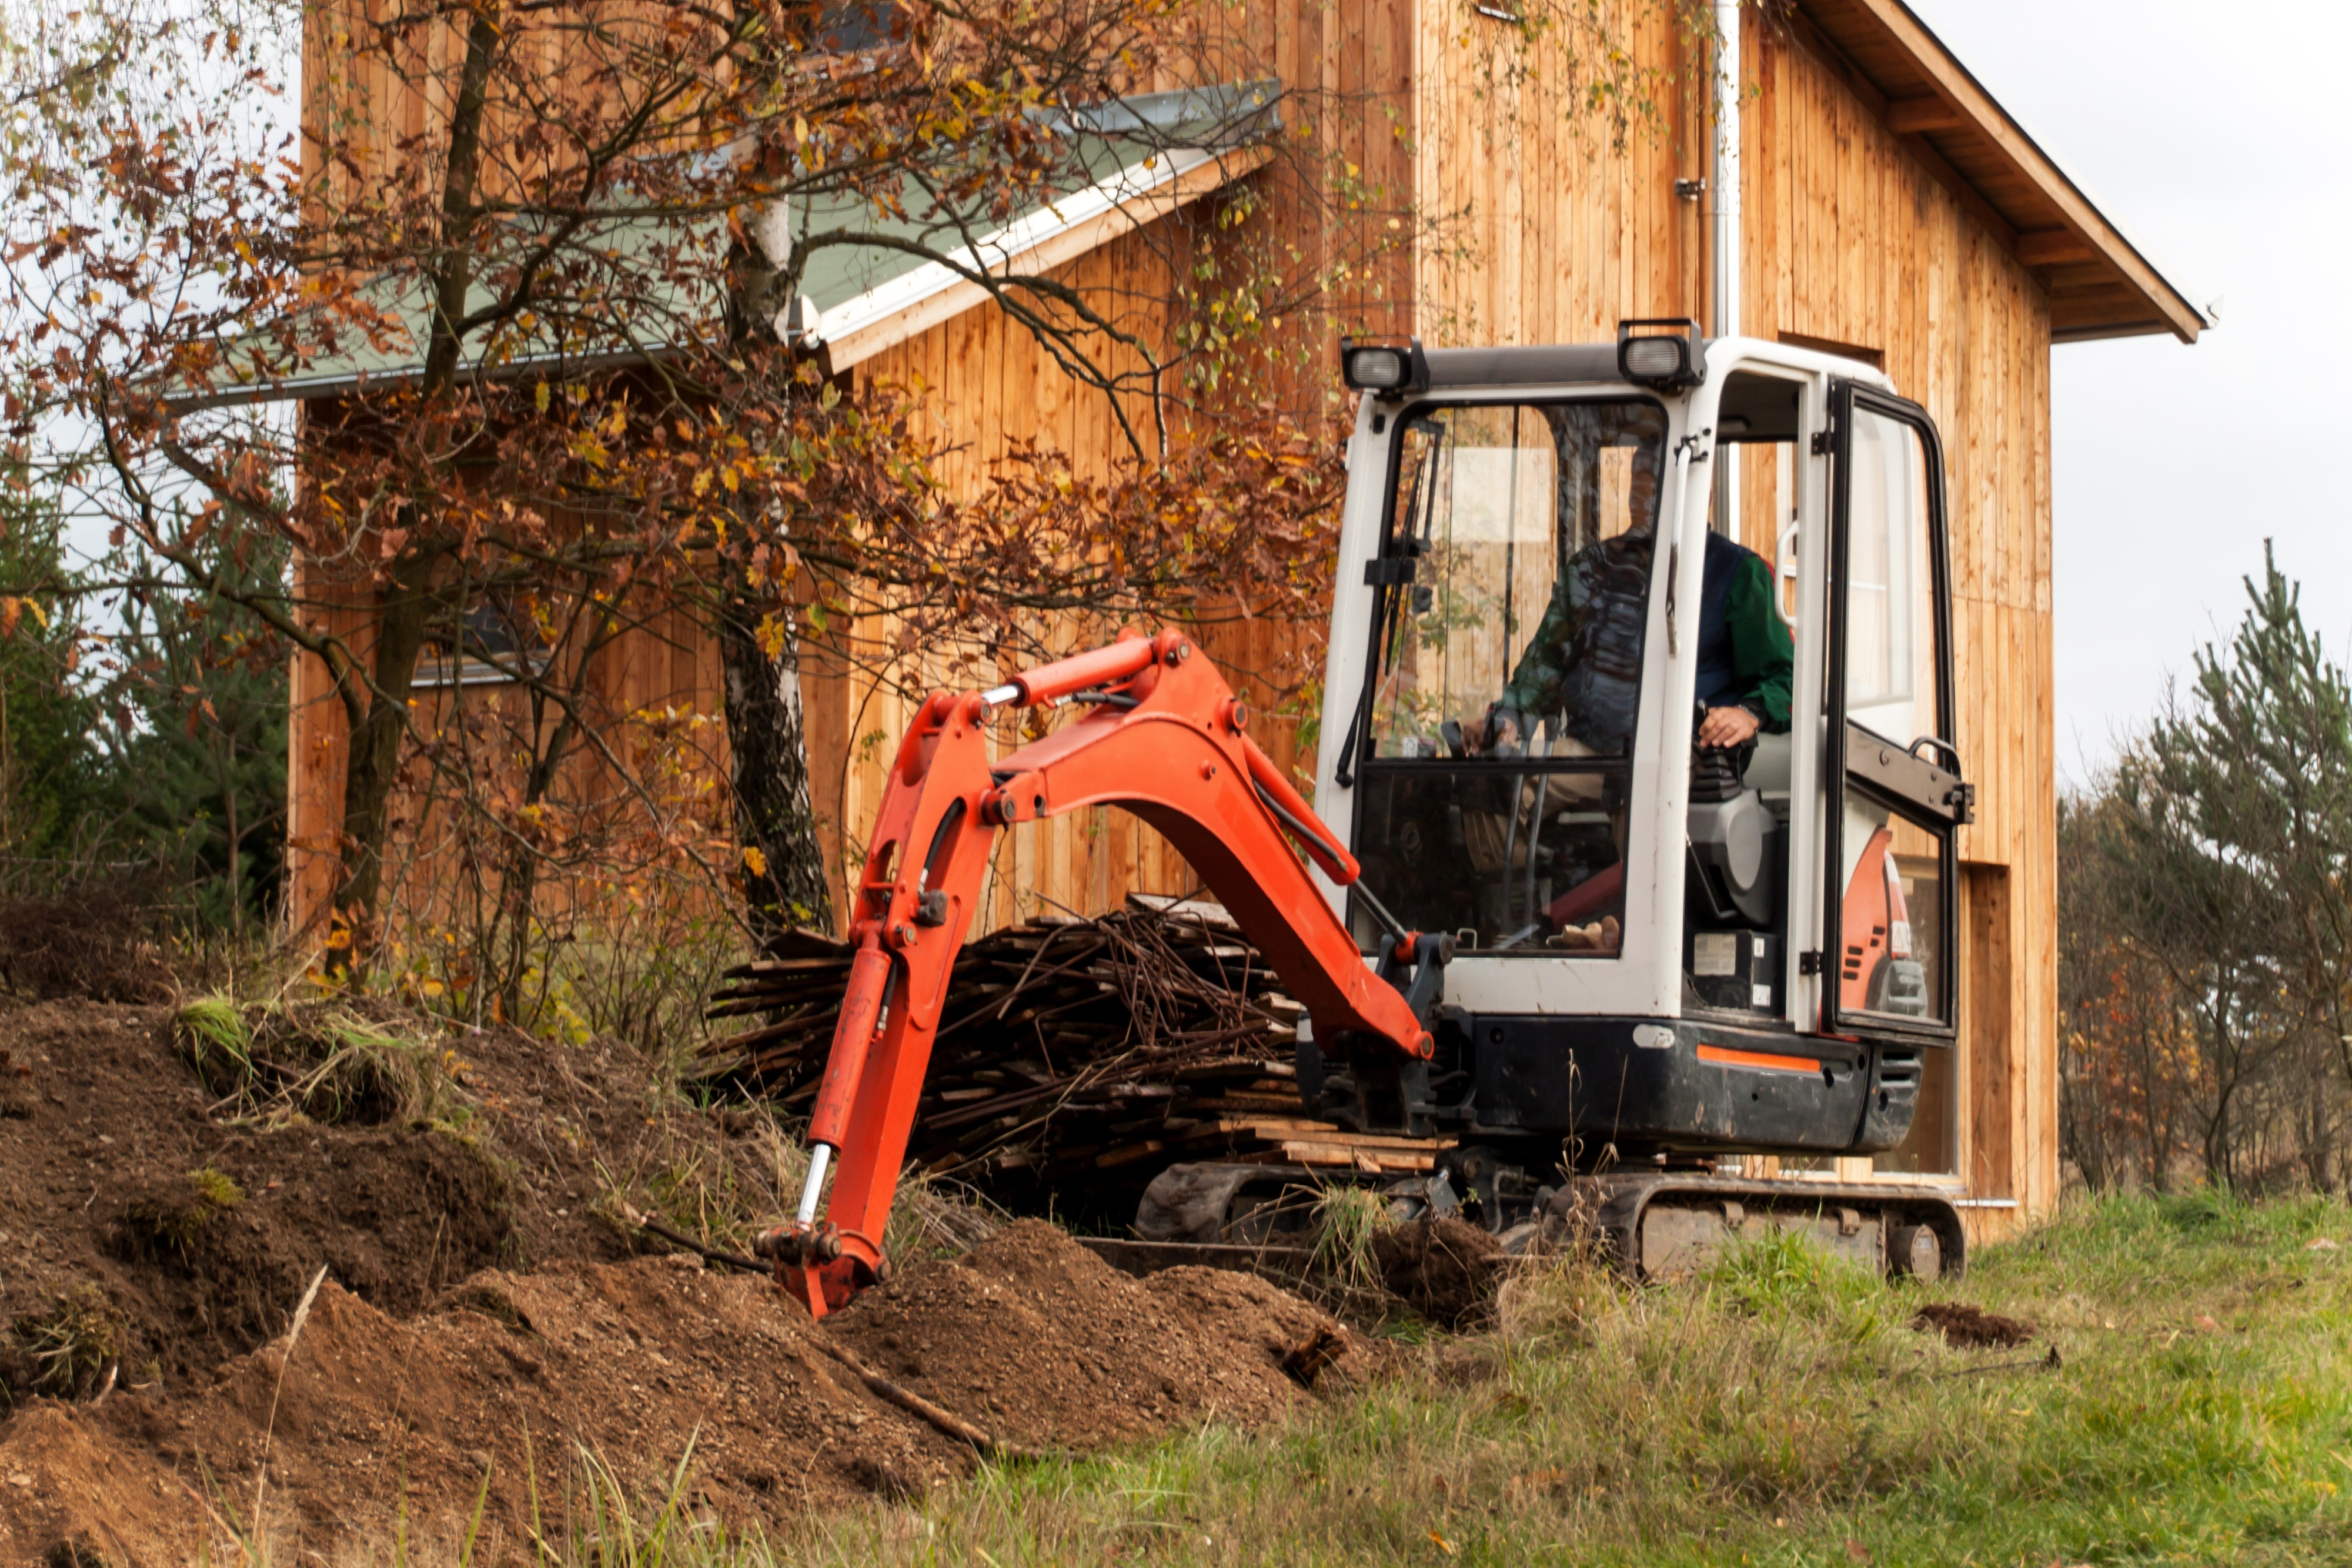 Mini excavator on construction site. Construction of a family house near a forest.